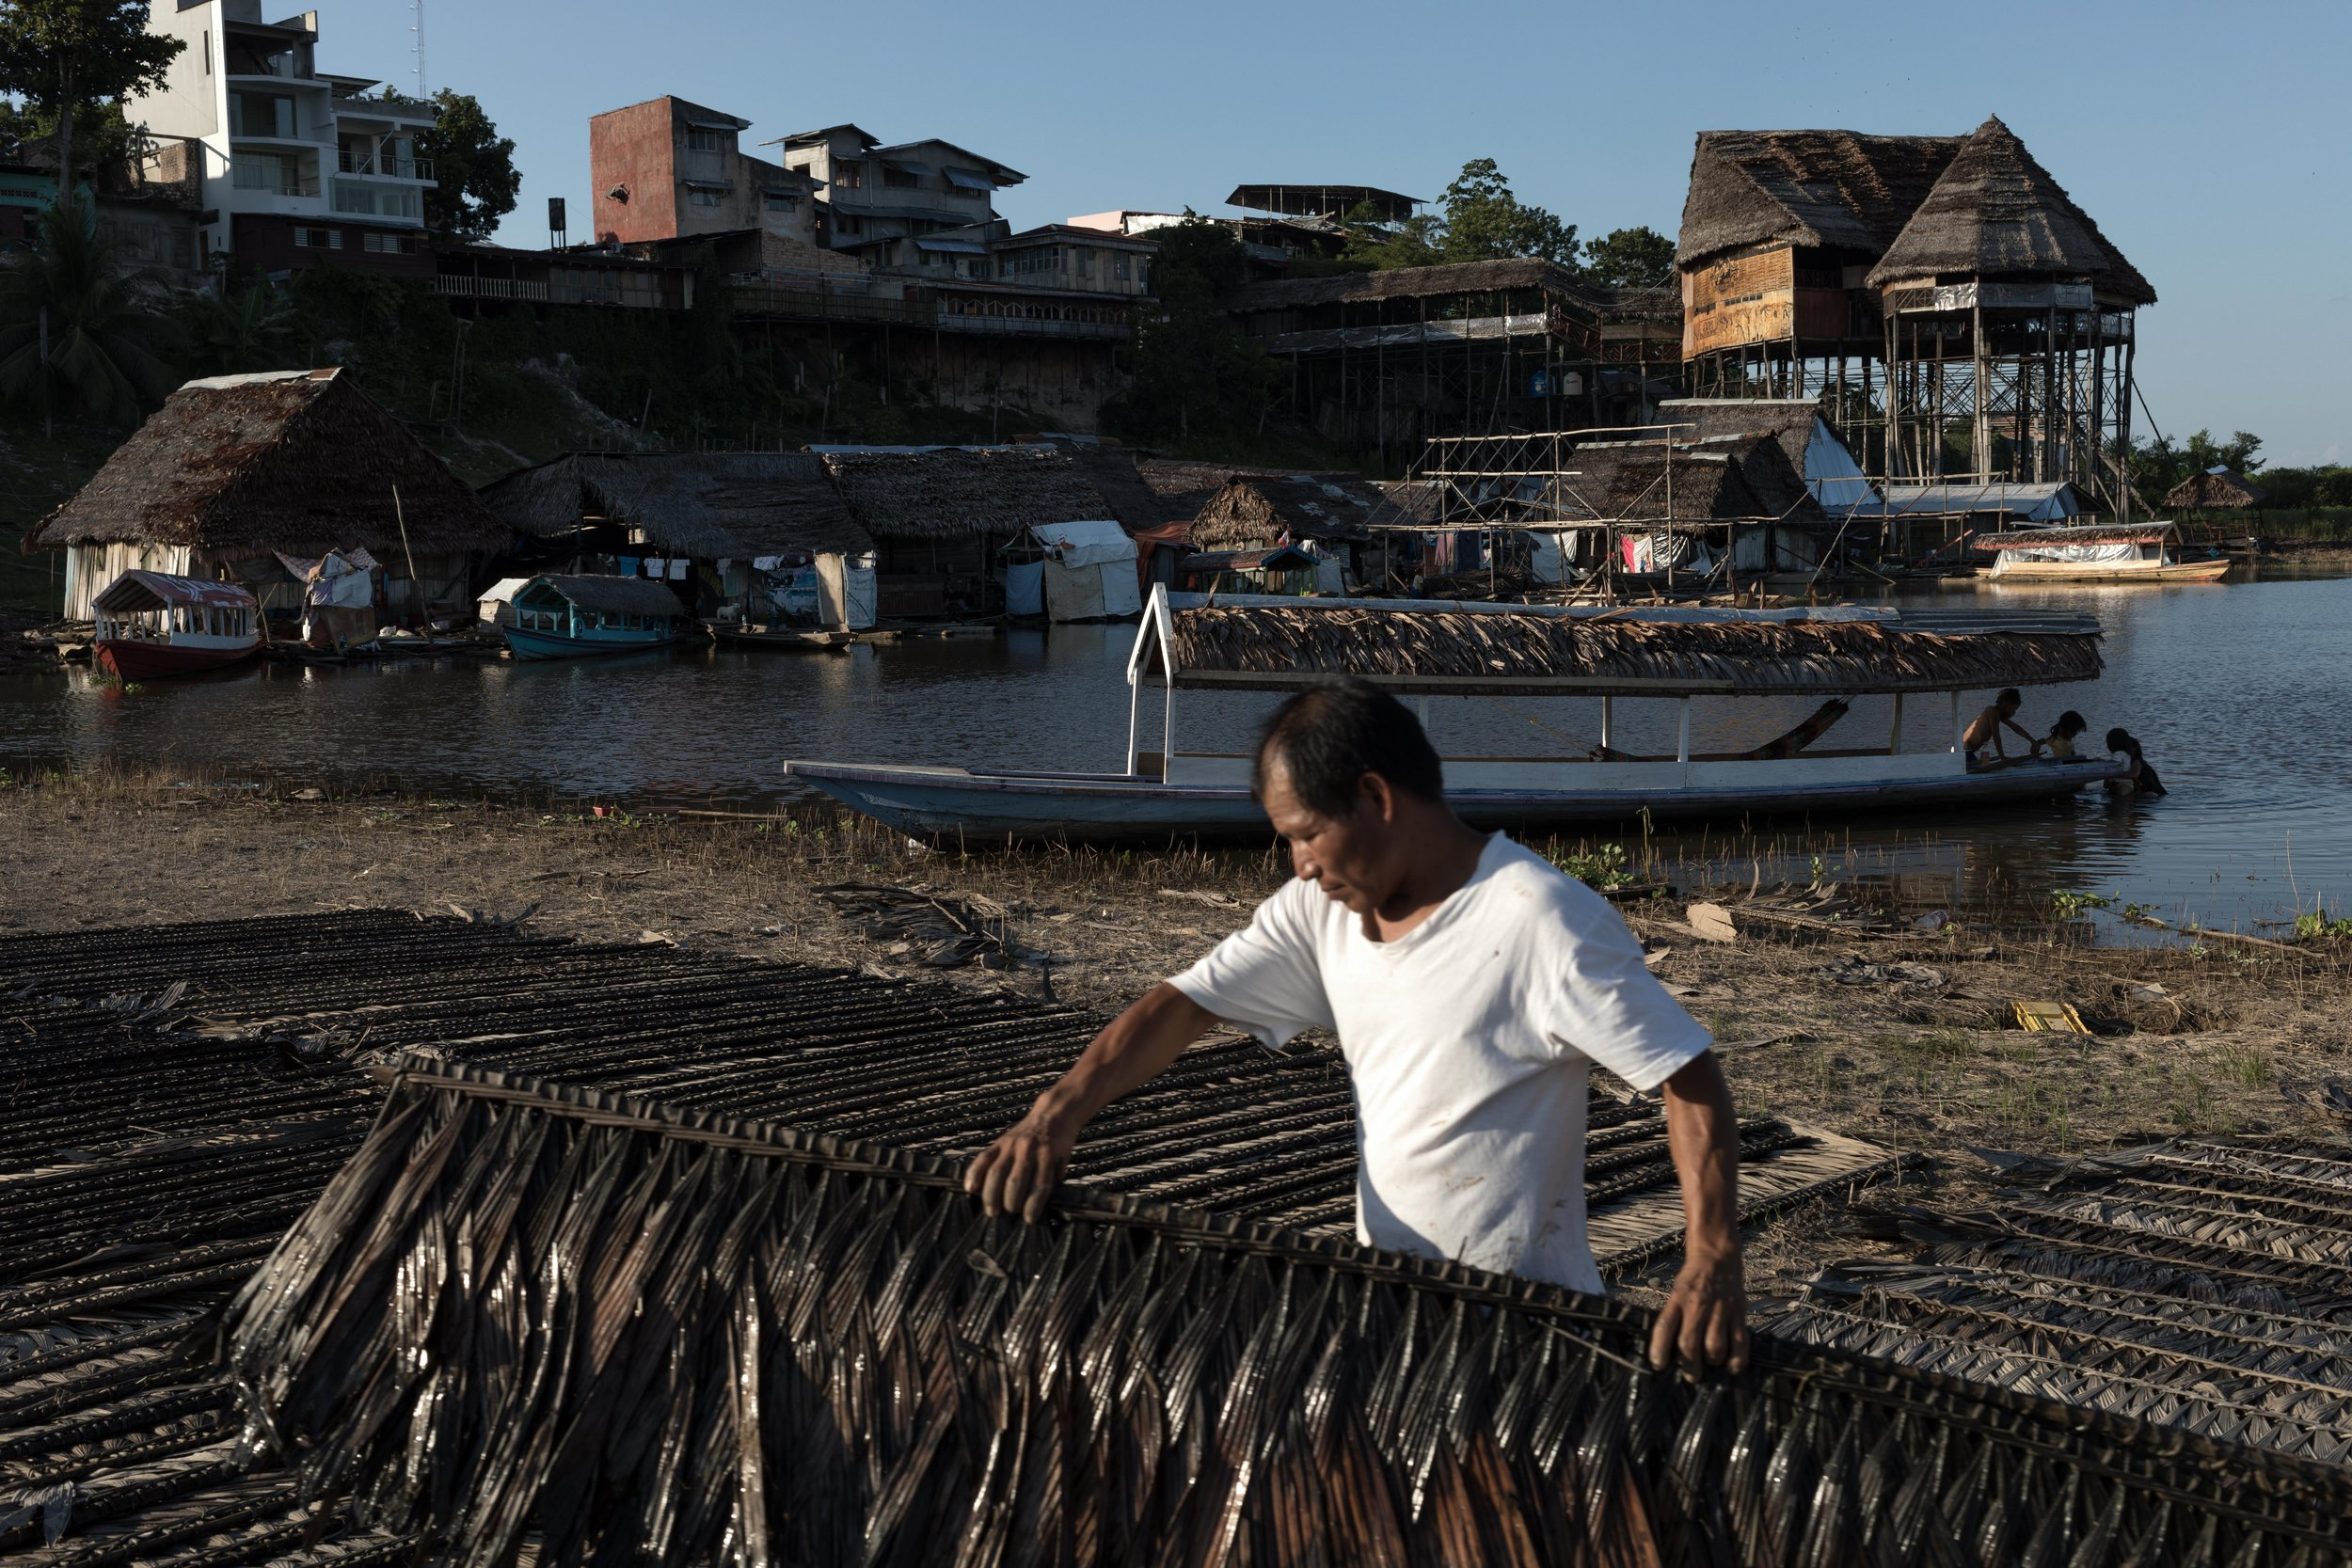 Mr. Alcides lining up palm leaves to use as roof on his house -Iquitos, Peru